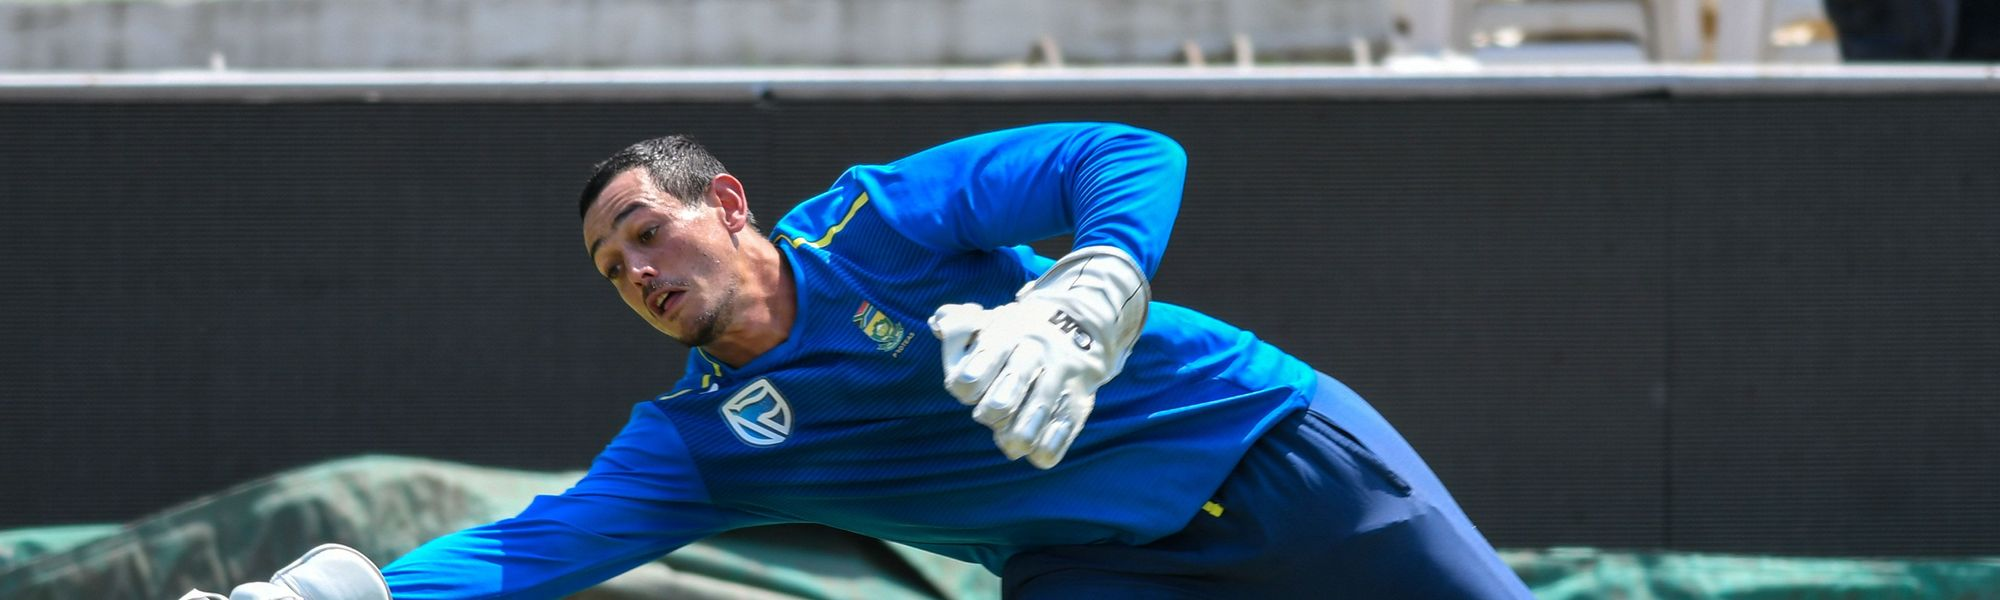 Quinton de Kock will lead the side in the T20Is, with Faf du Plessis rested